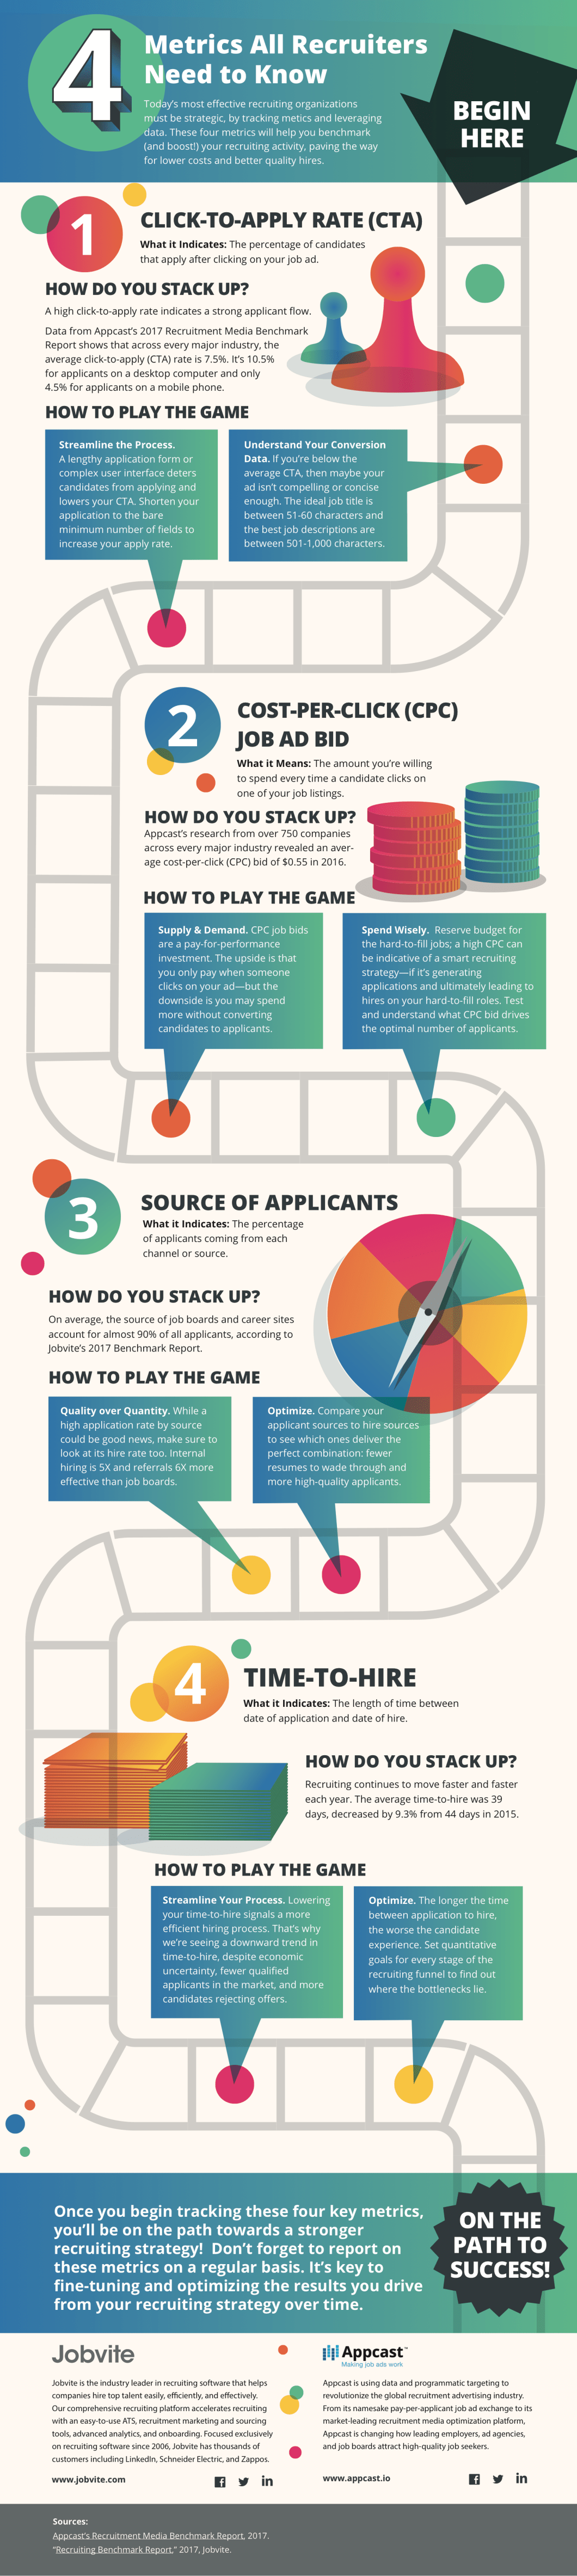 The 4 Metrics Way to Strengthen Recruitment Strategy - Infographic GP